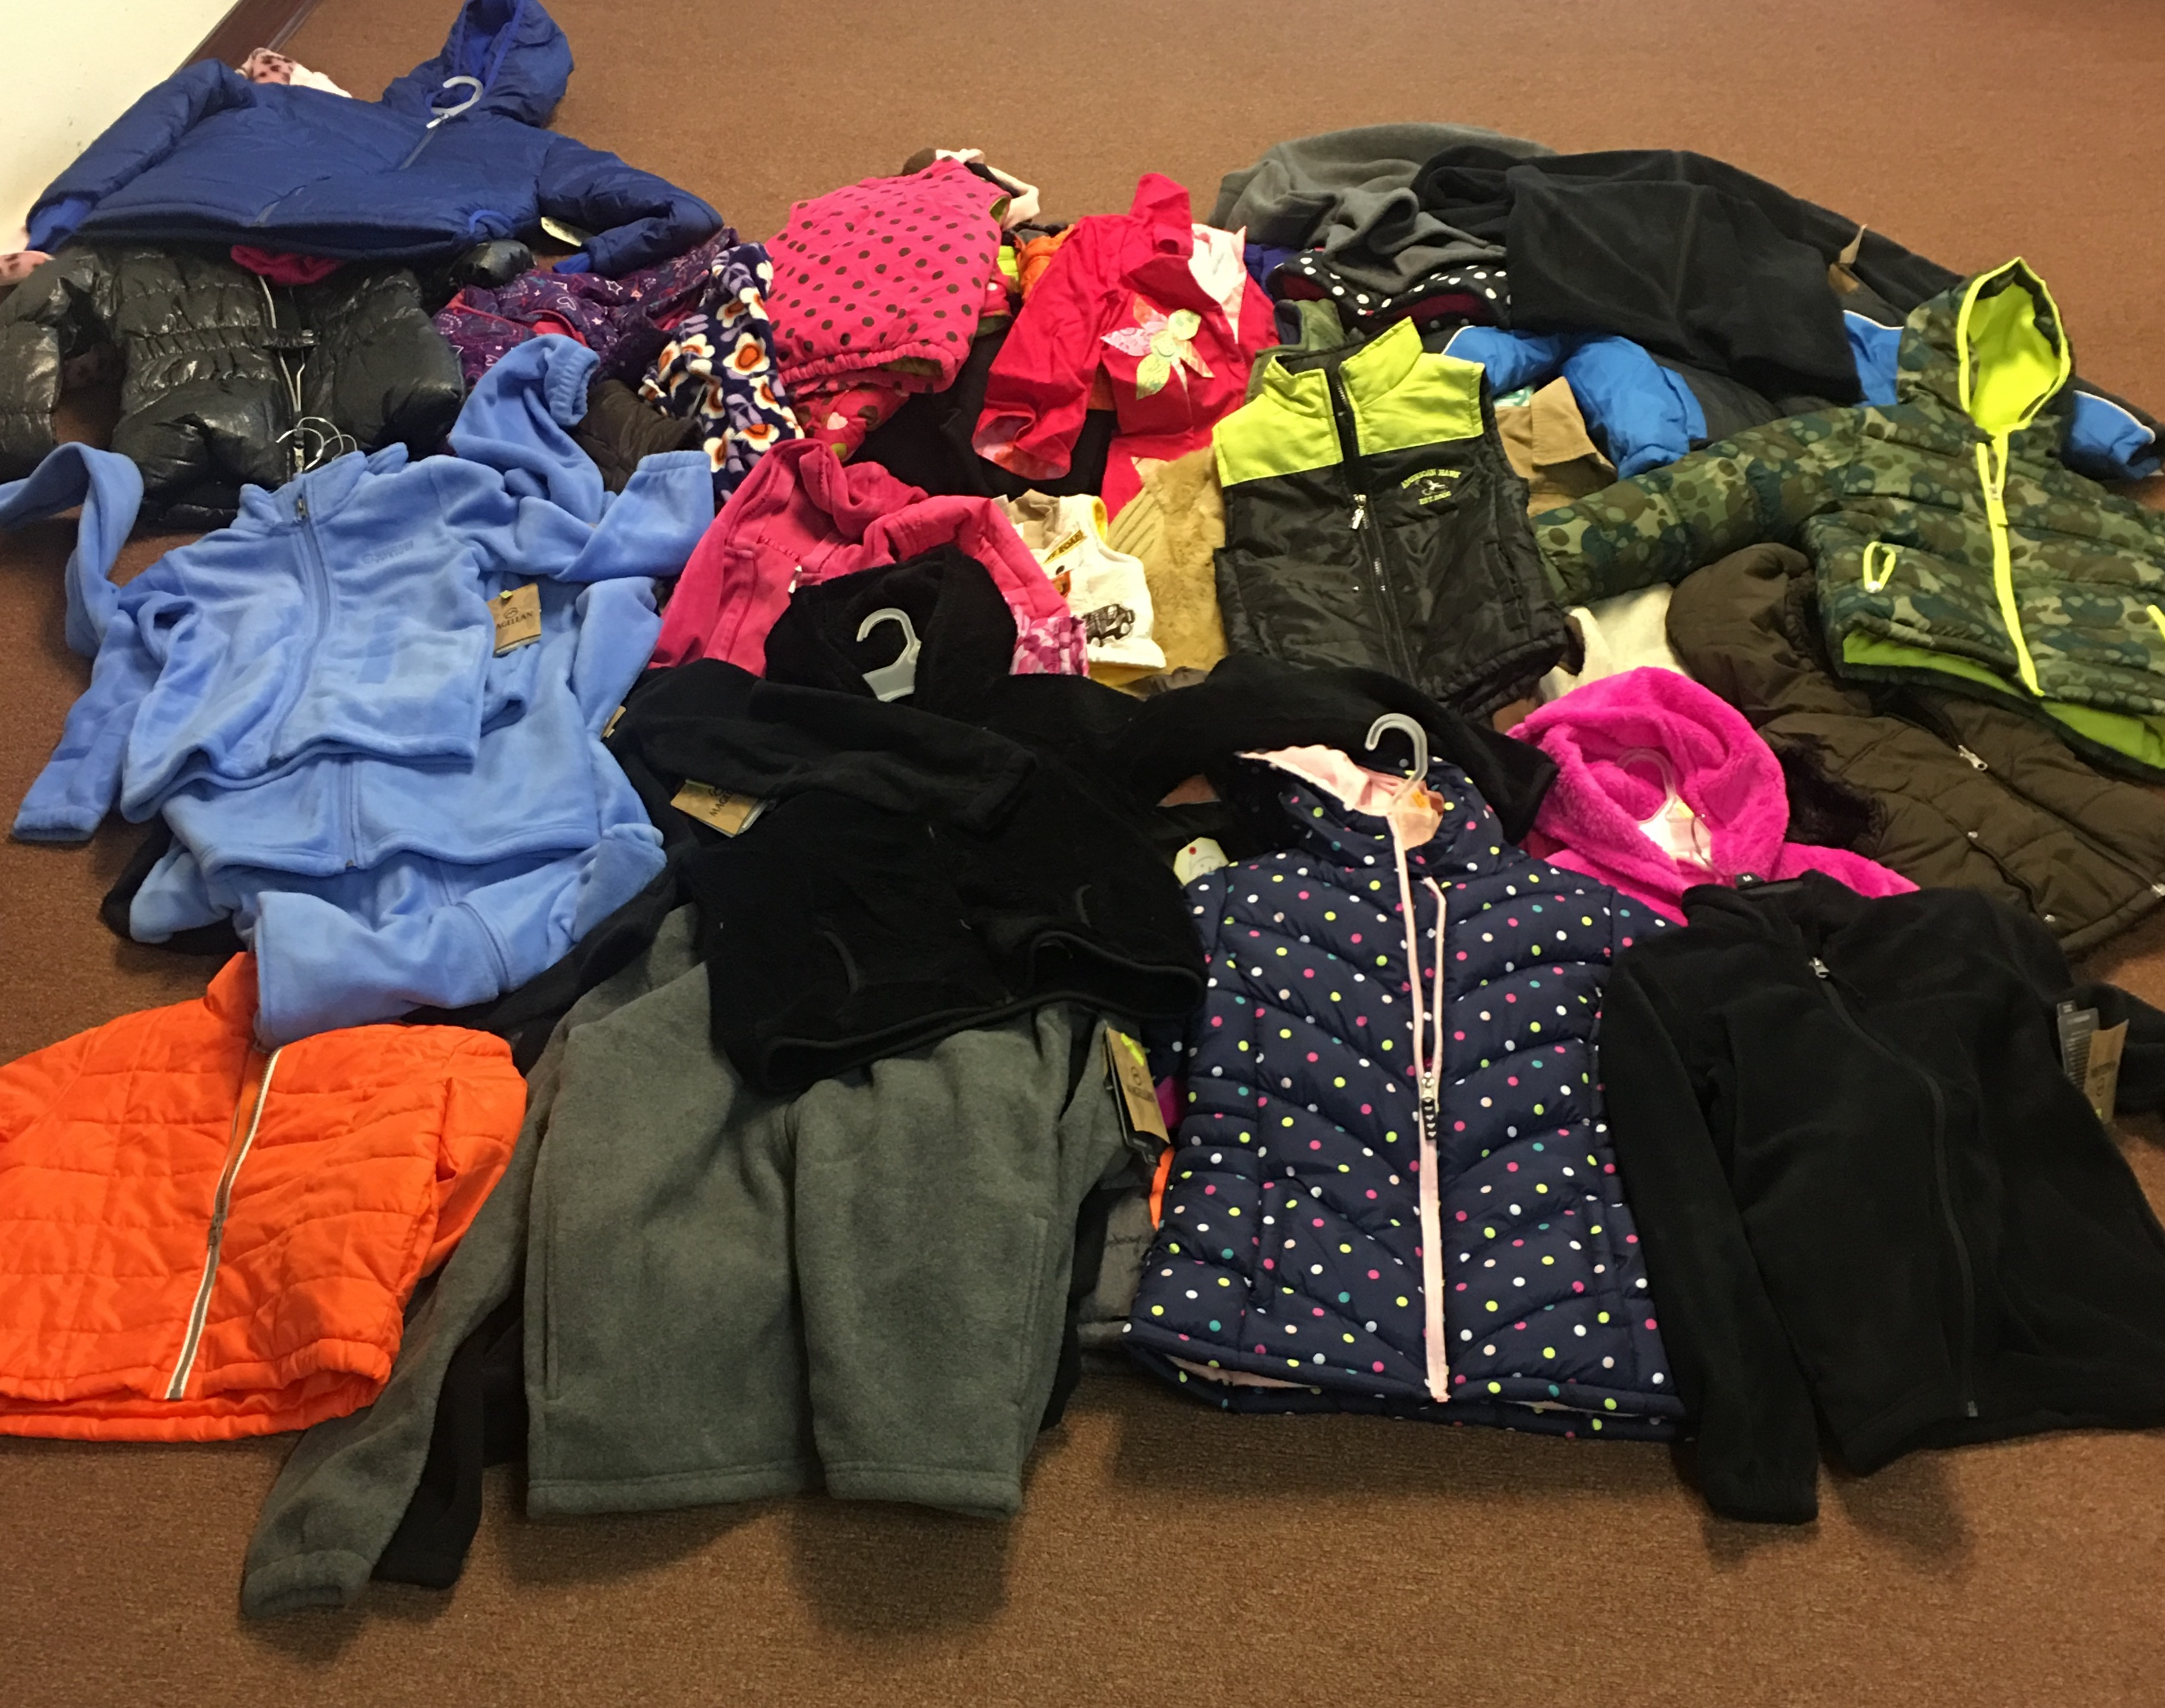 Thank you everyone for donating coats to the students at Travis Elementary. We collected 50 coats!